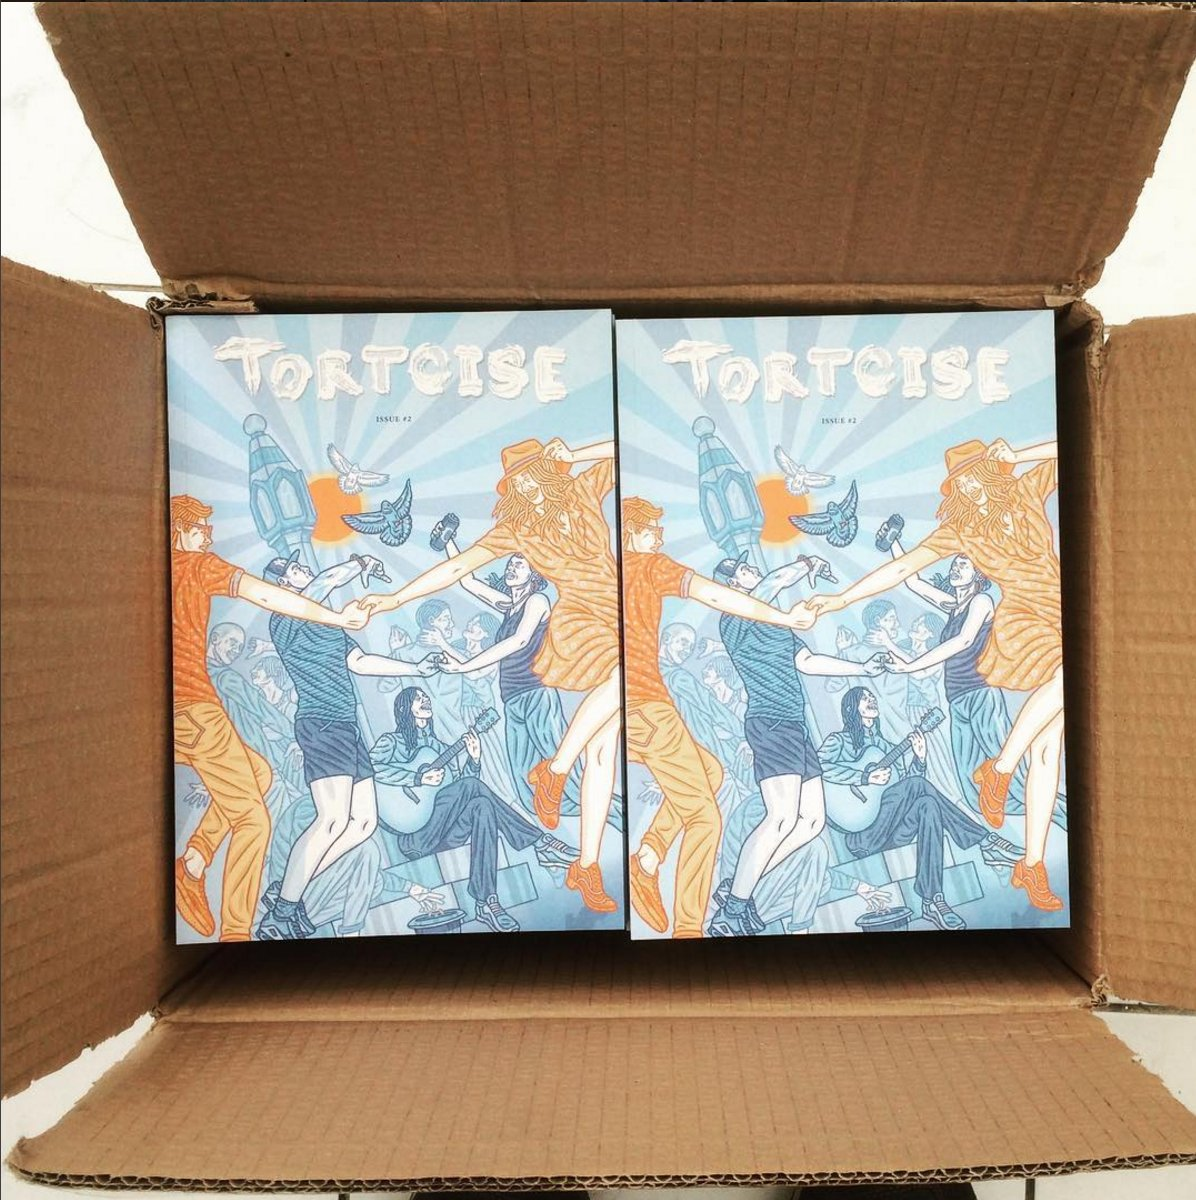 We&#39;ve made it possible to order a copy of Issue 2 of #TortoiseMagazine online if you can&#39;t find one in #Chester!  https://www. tortoisemag.co.uk/shop/tortoise2  &nbsp;  <br>http://pic.twitter.com/5hdxOqliVN